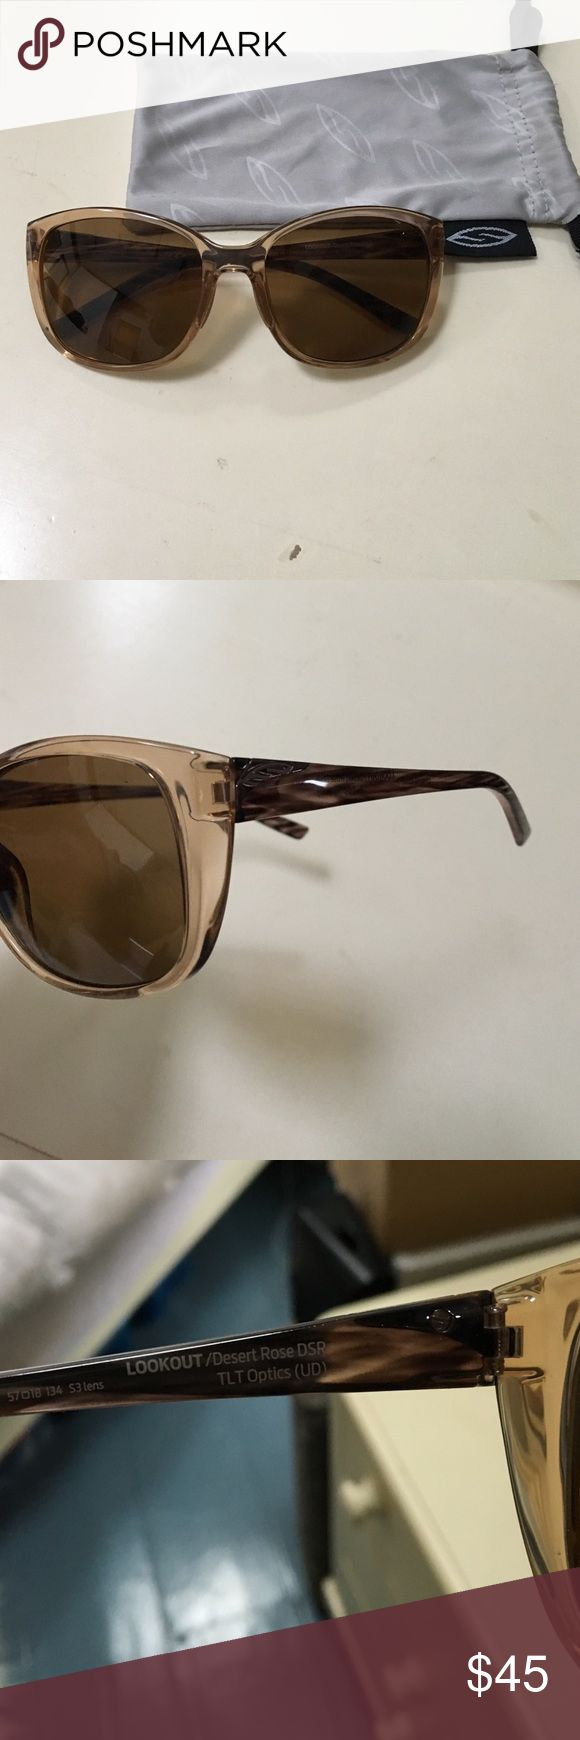 Smith Optics Lookout sunglasses Desert Rose frame with bronze lens. Like new. Smith Optics Accessories Sunglasses